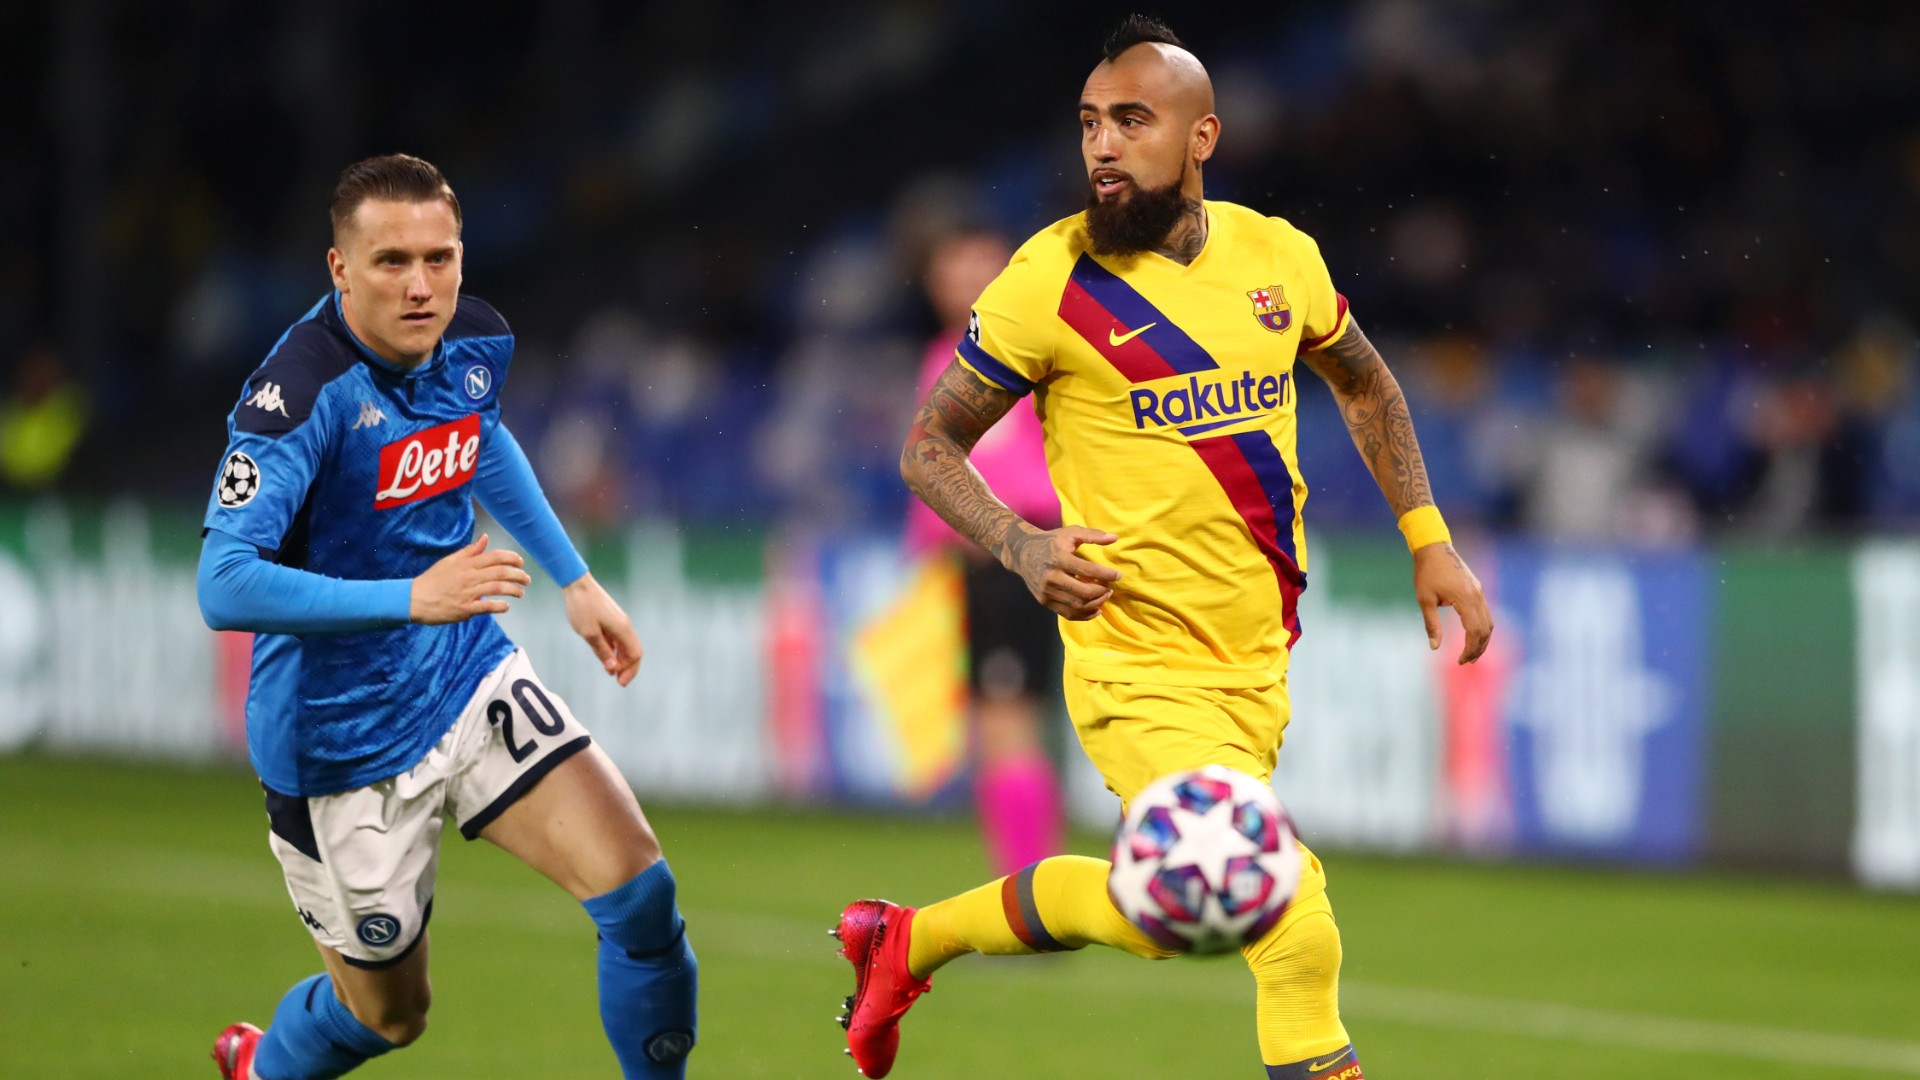 Napoli president urges UEFA to move Champions League clash with Barcelona amid Covid-19 crisis in Spain